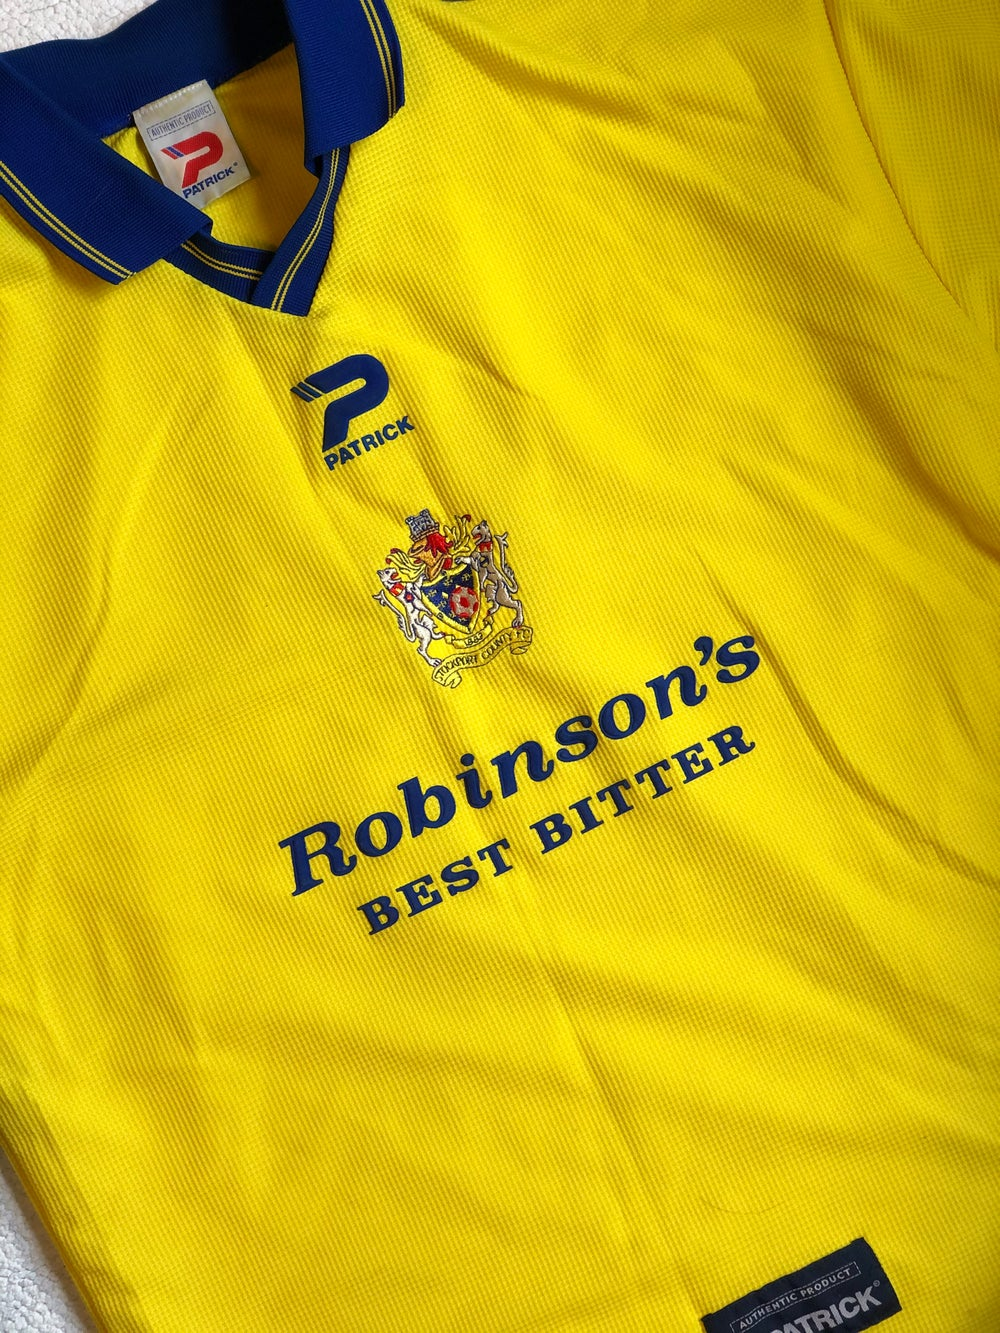 Image of Replica 2000-02 Patrick Away Shirt